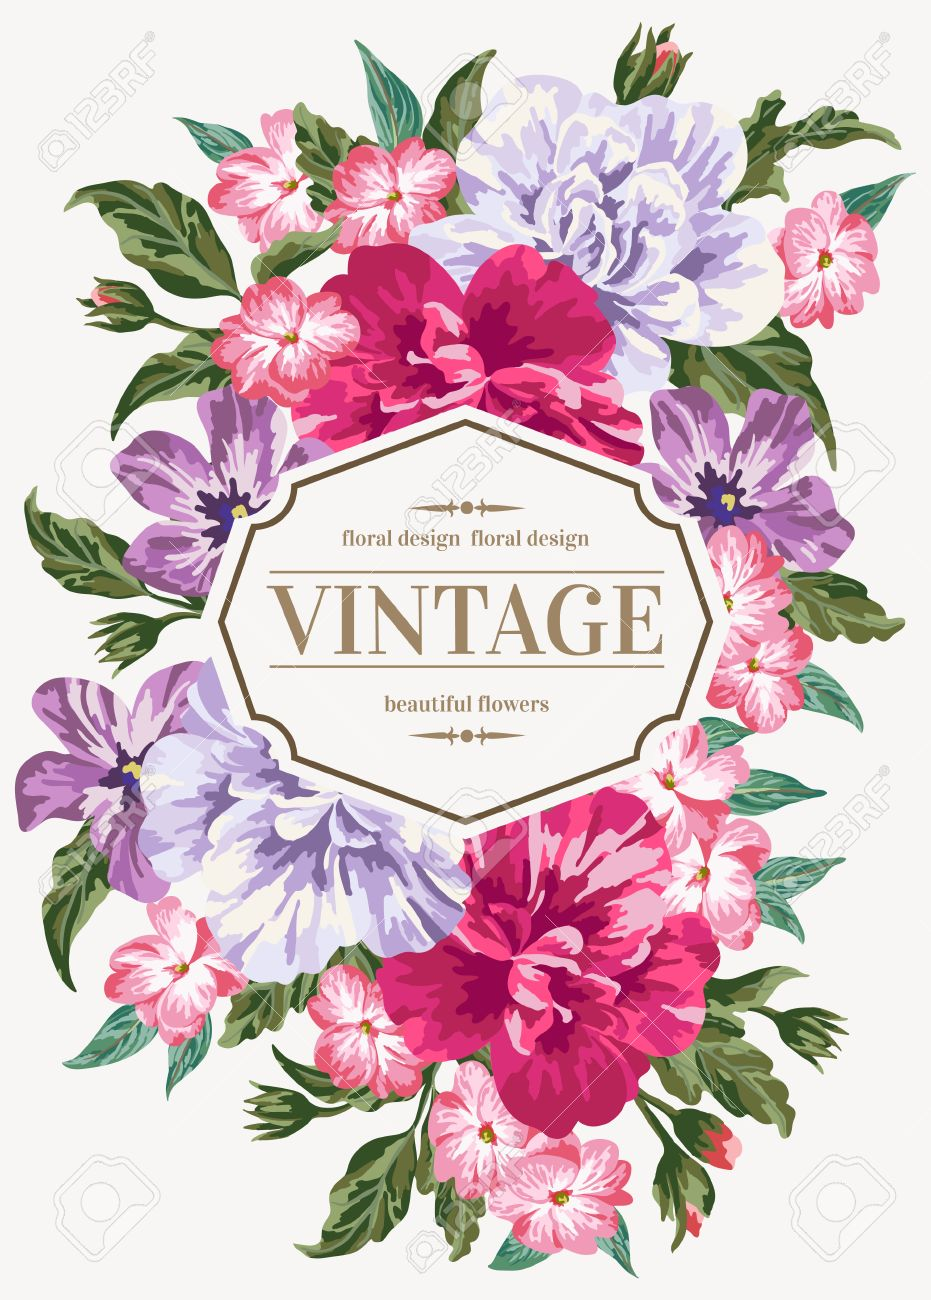 Vintage wedding invitation with colorful flowers. Vector illustration.